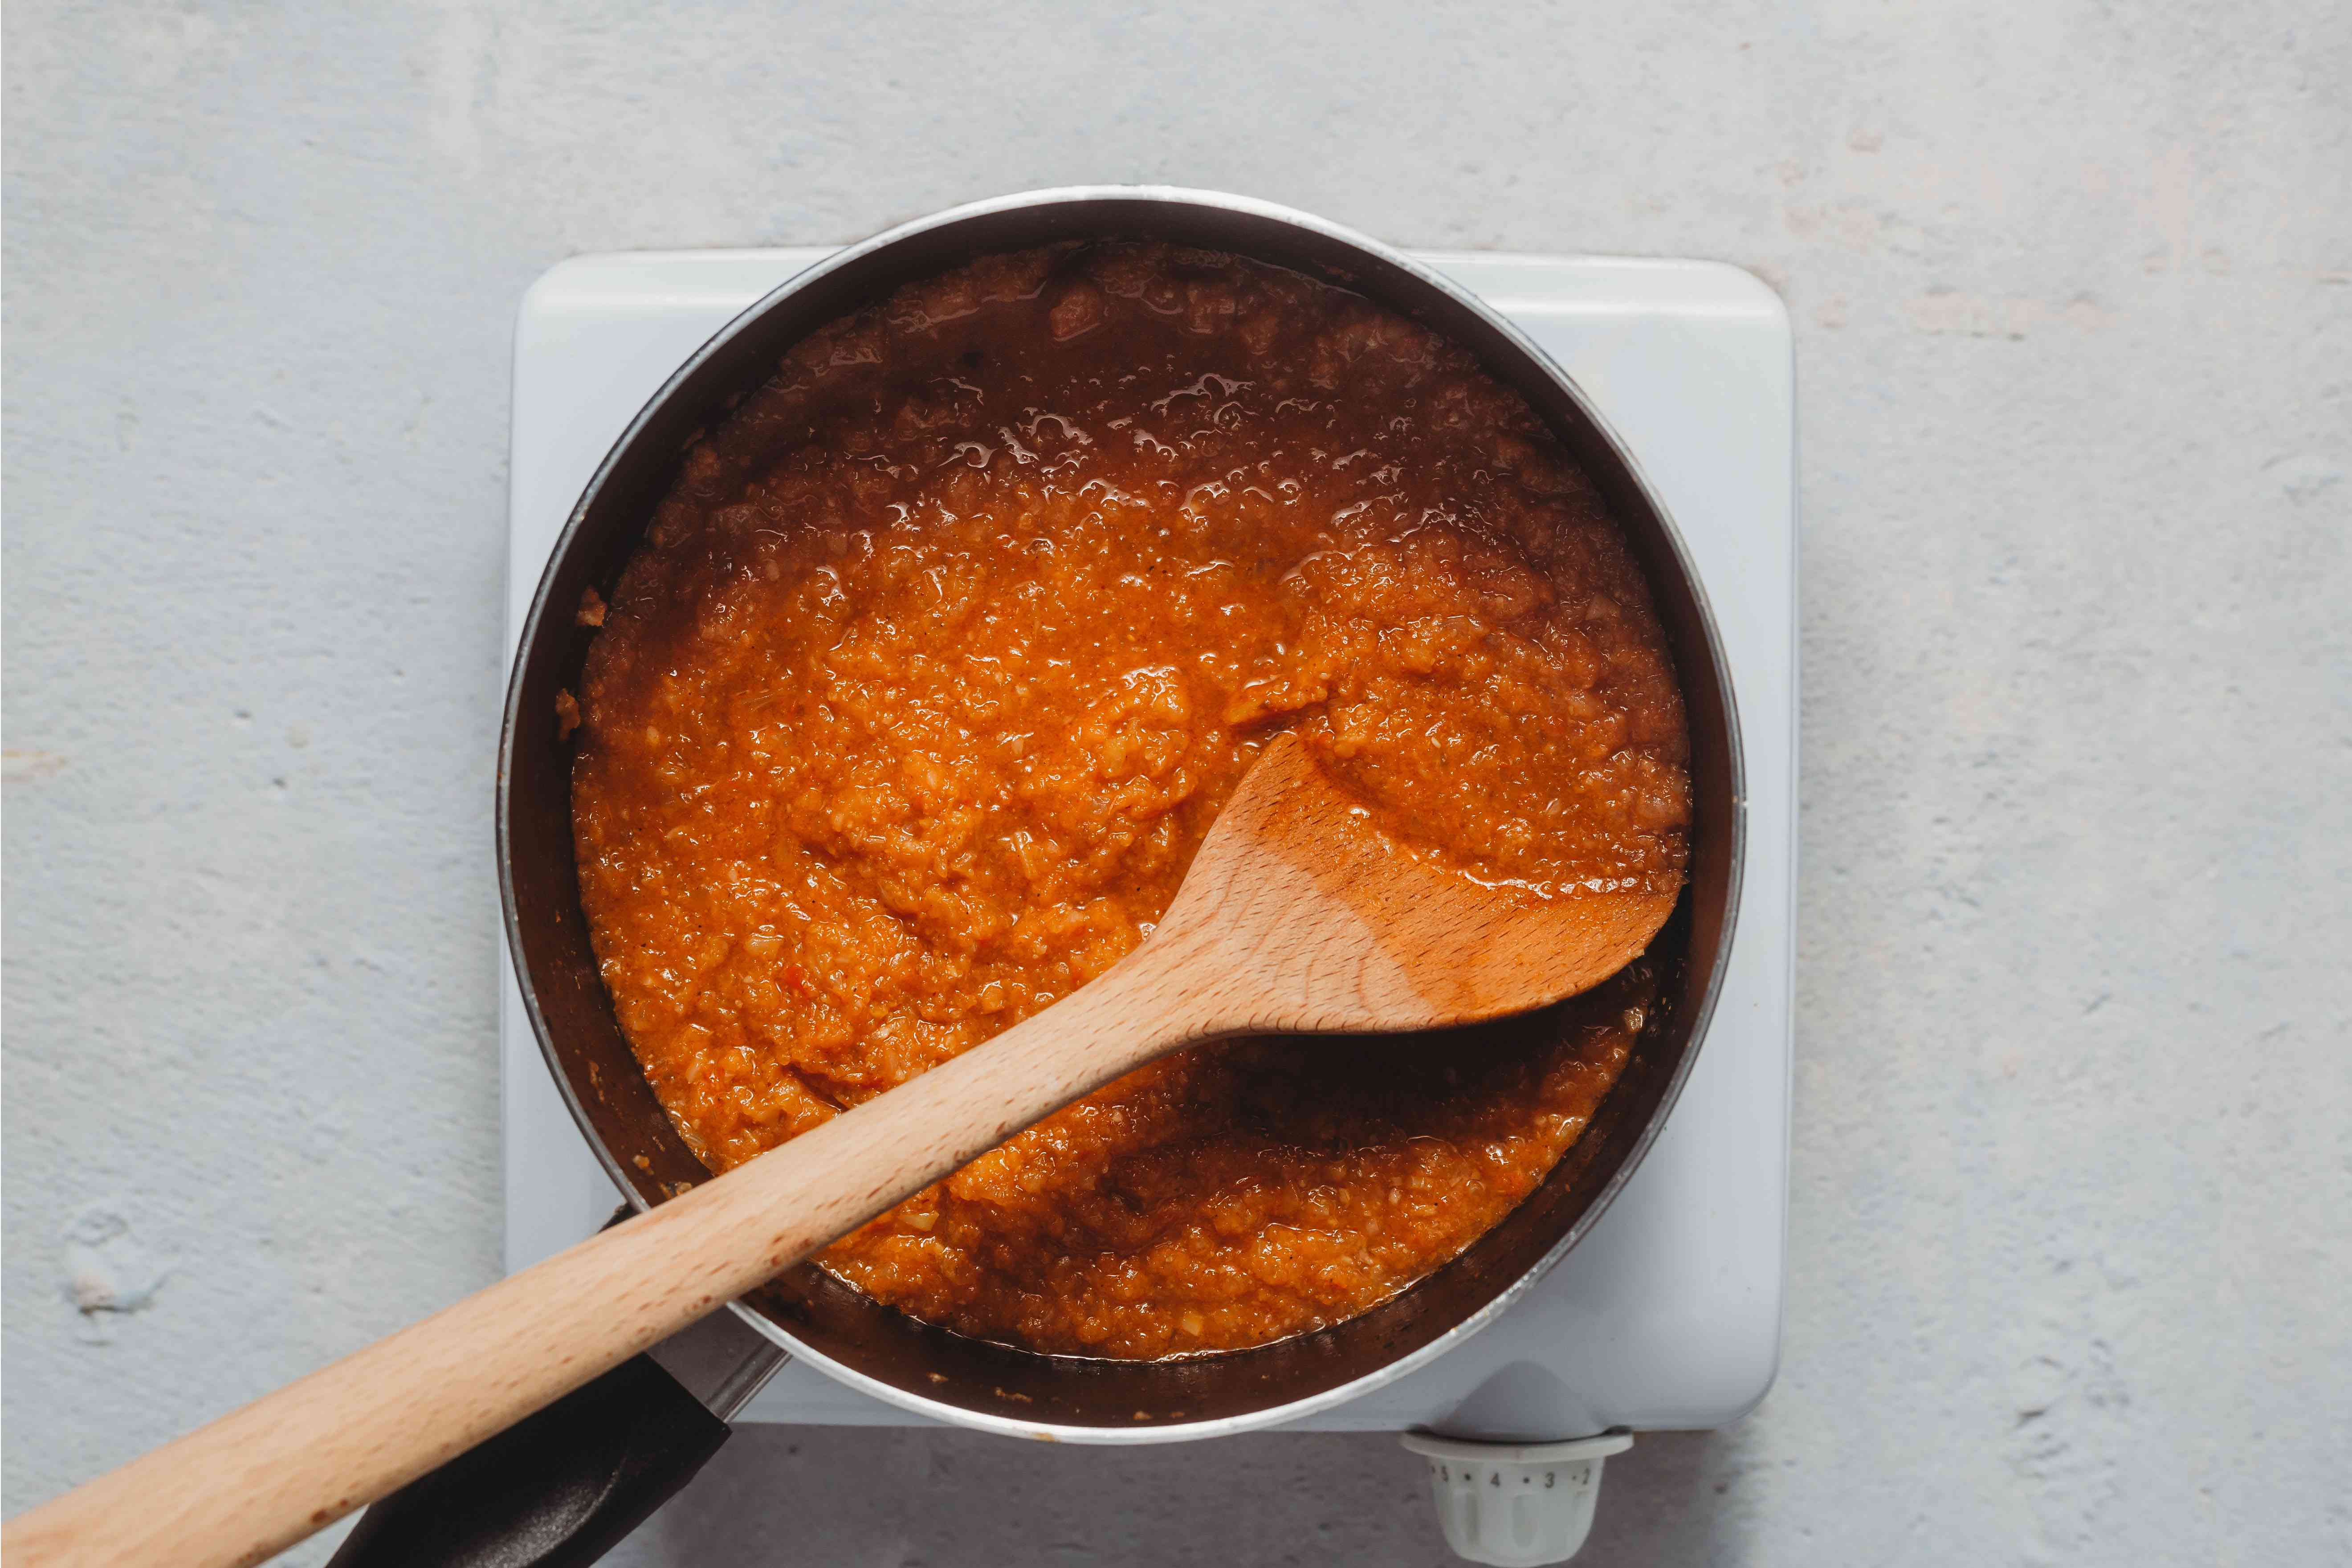 spice paste cooking in a pot